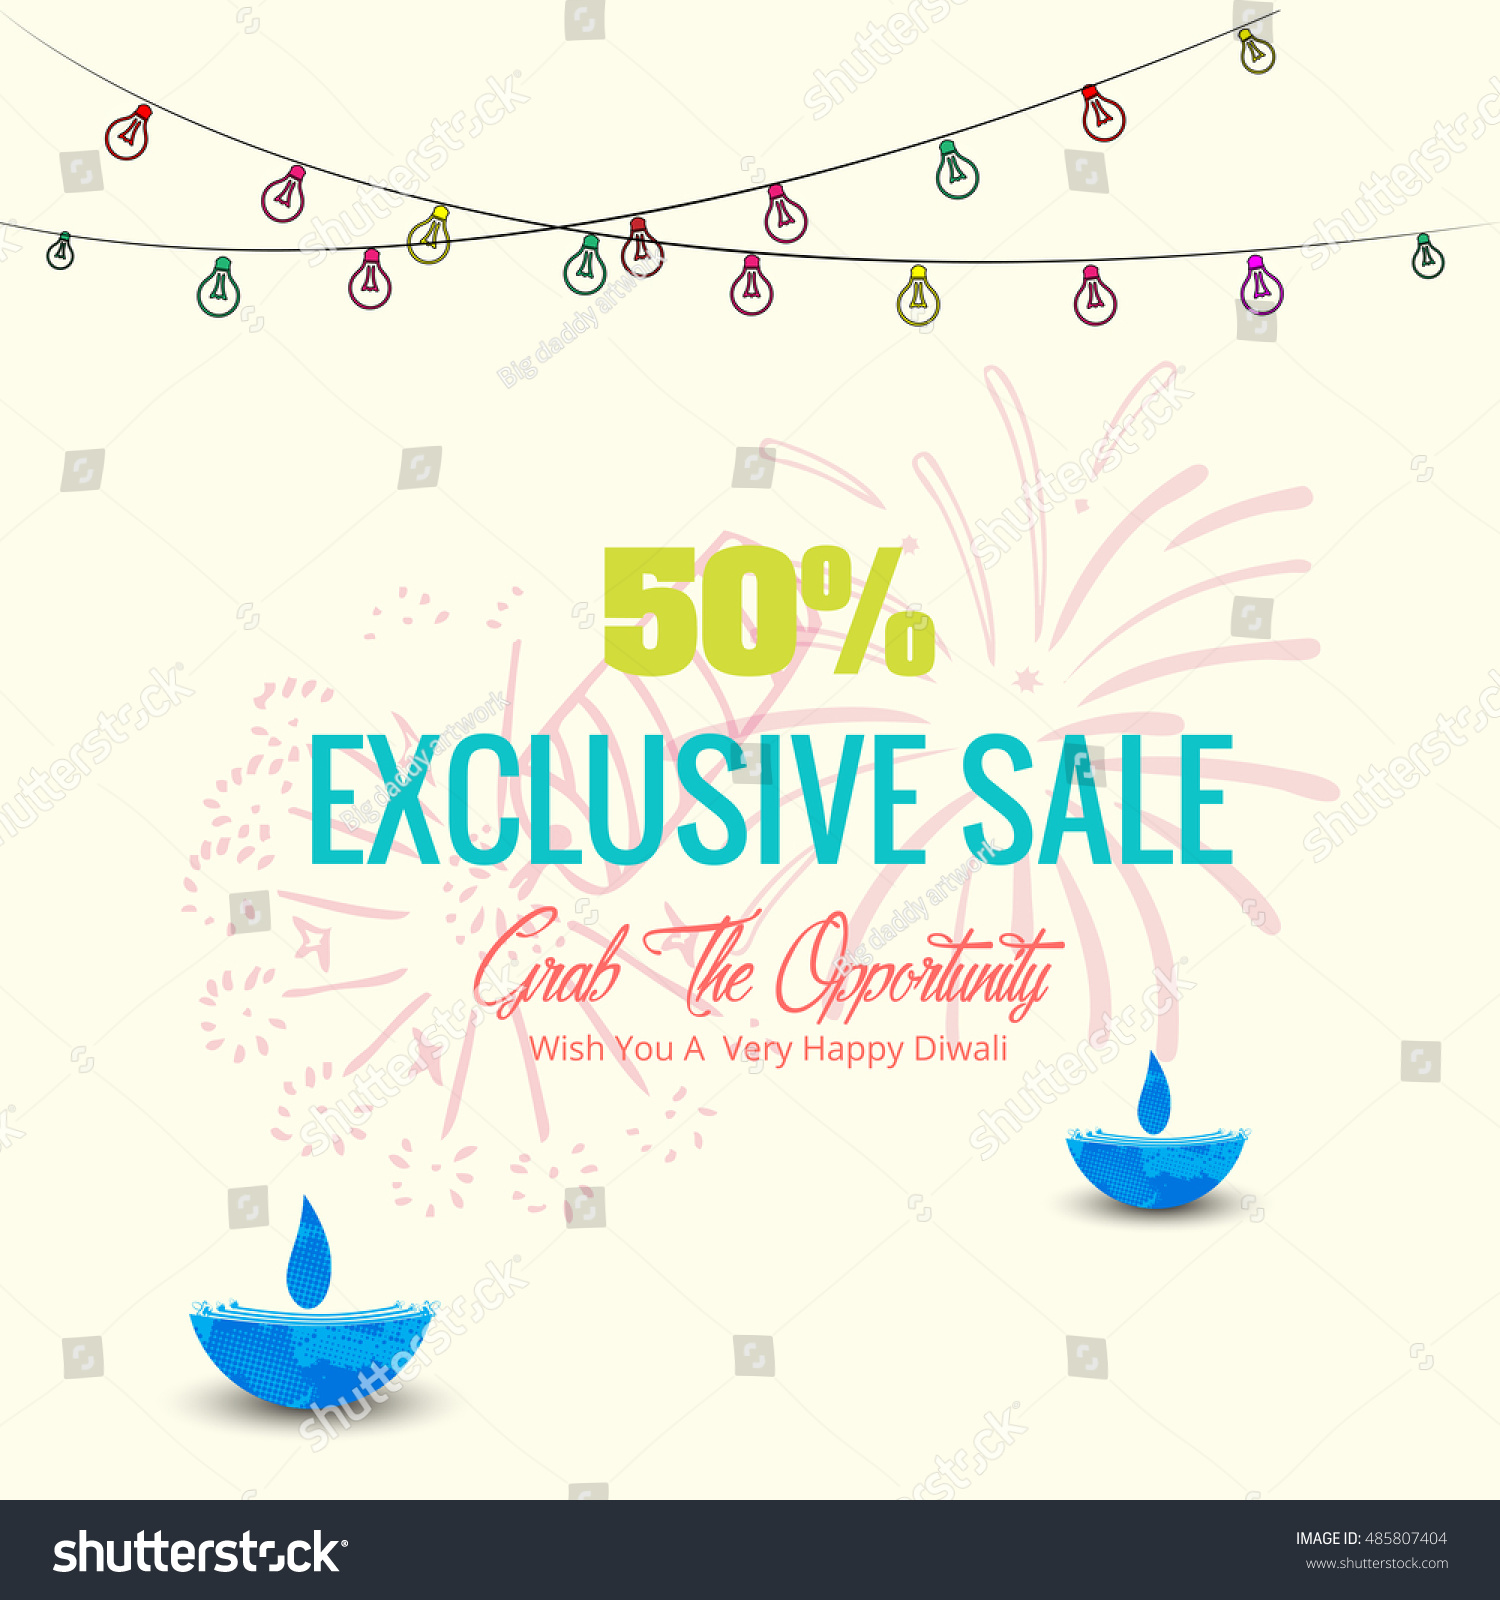 Vector illustration of Diwali festival with beautiful stylish lamp and Diwali lighting elements Offers